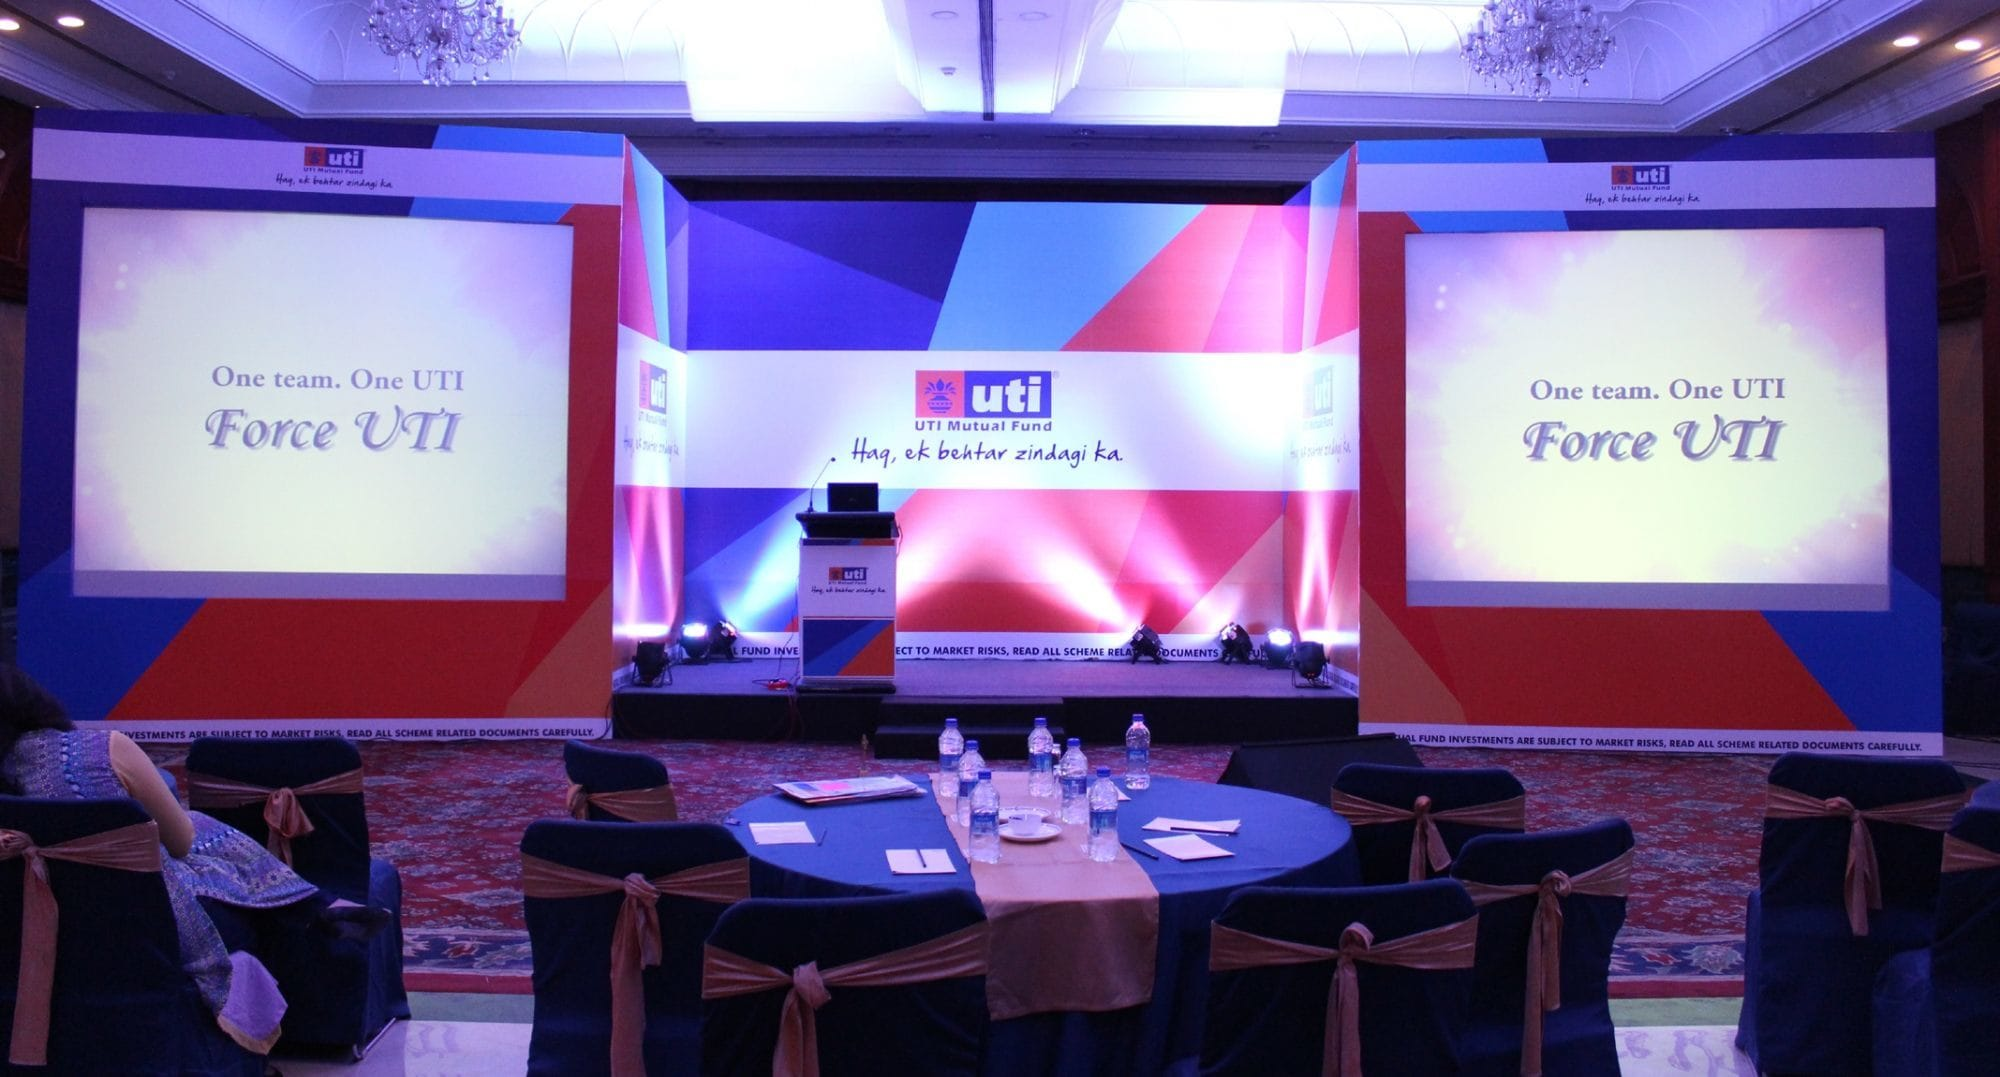 Event Management Companies in Patna - Event Organizers - Justdial